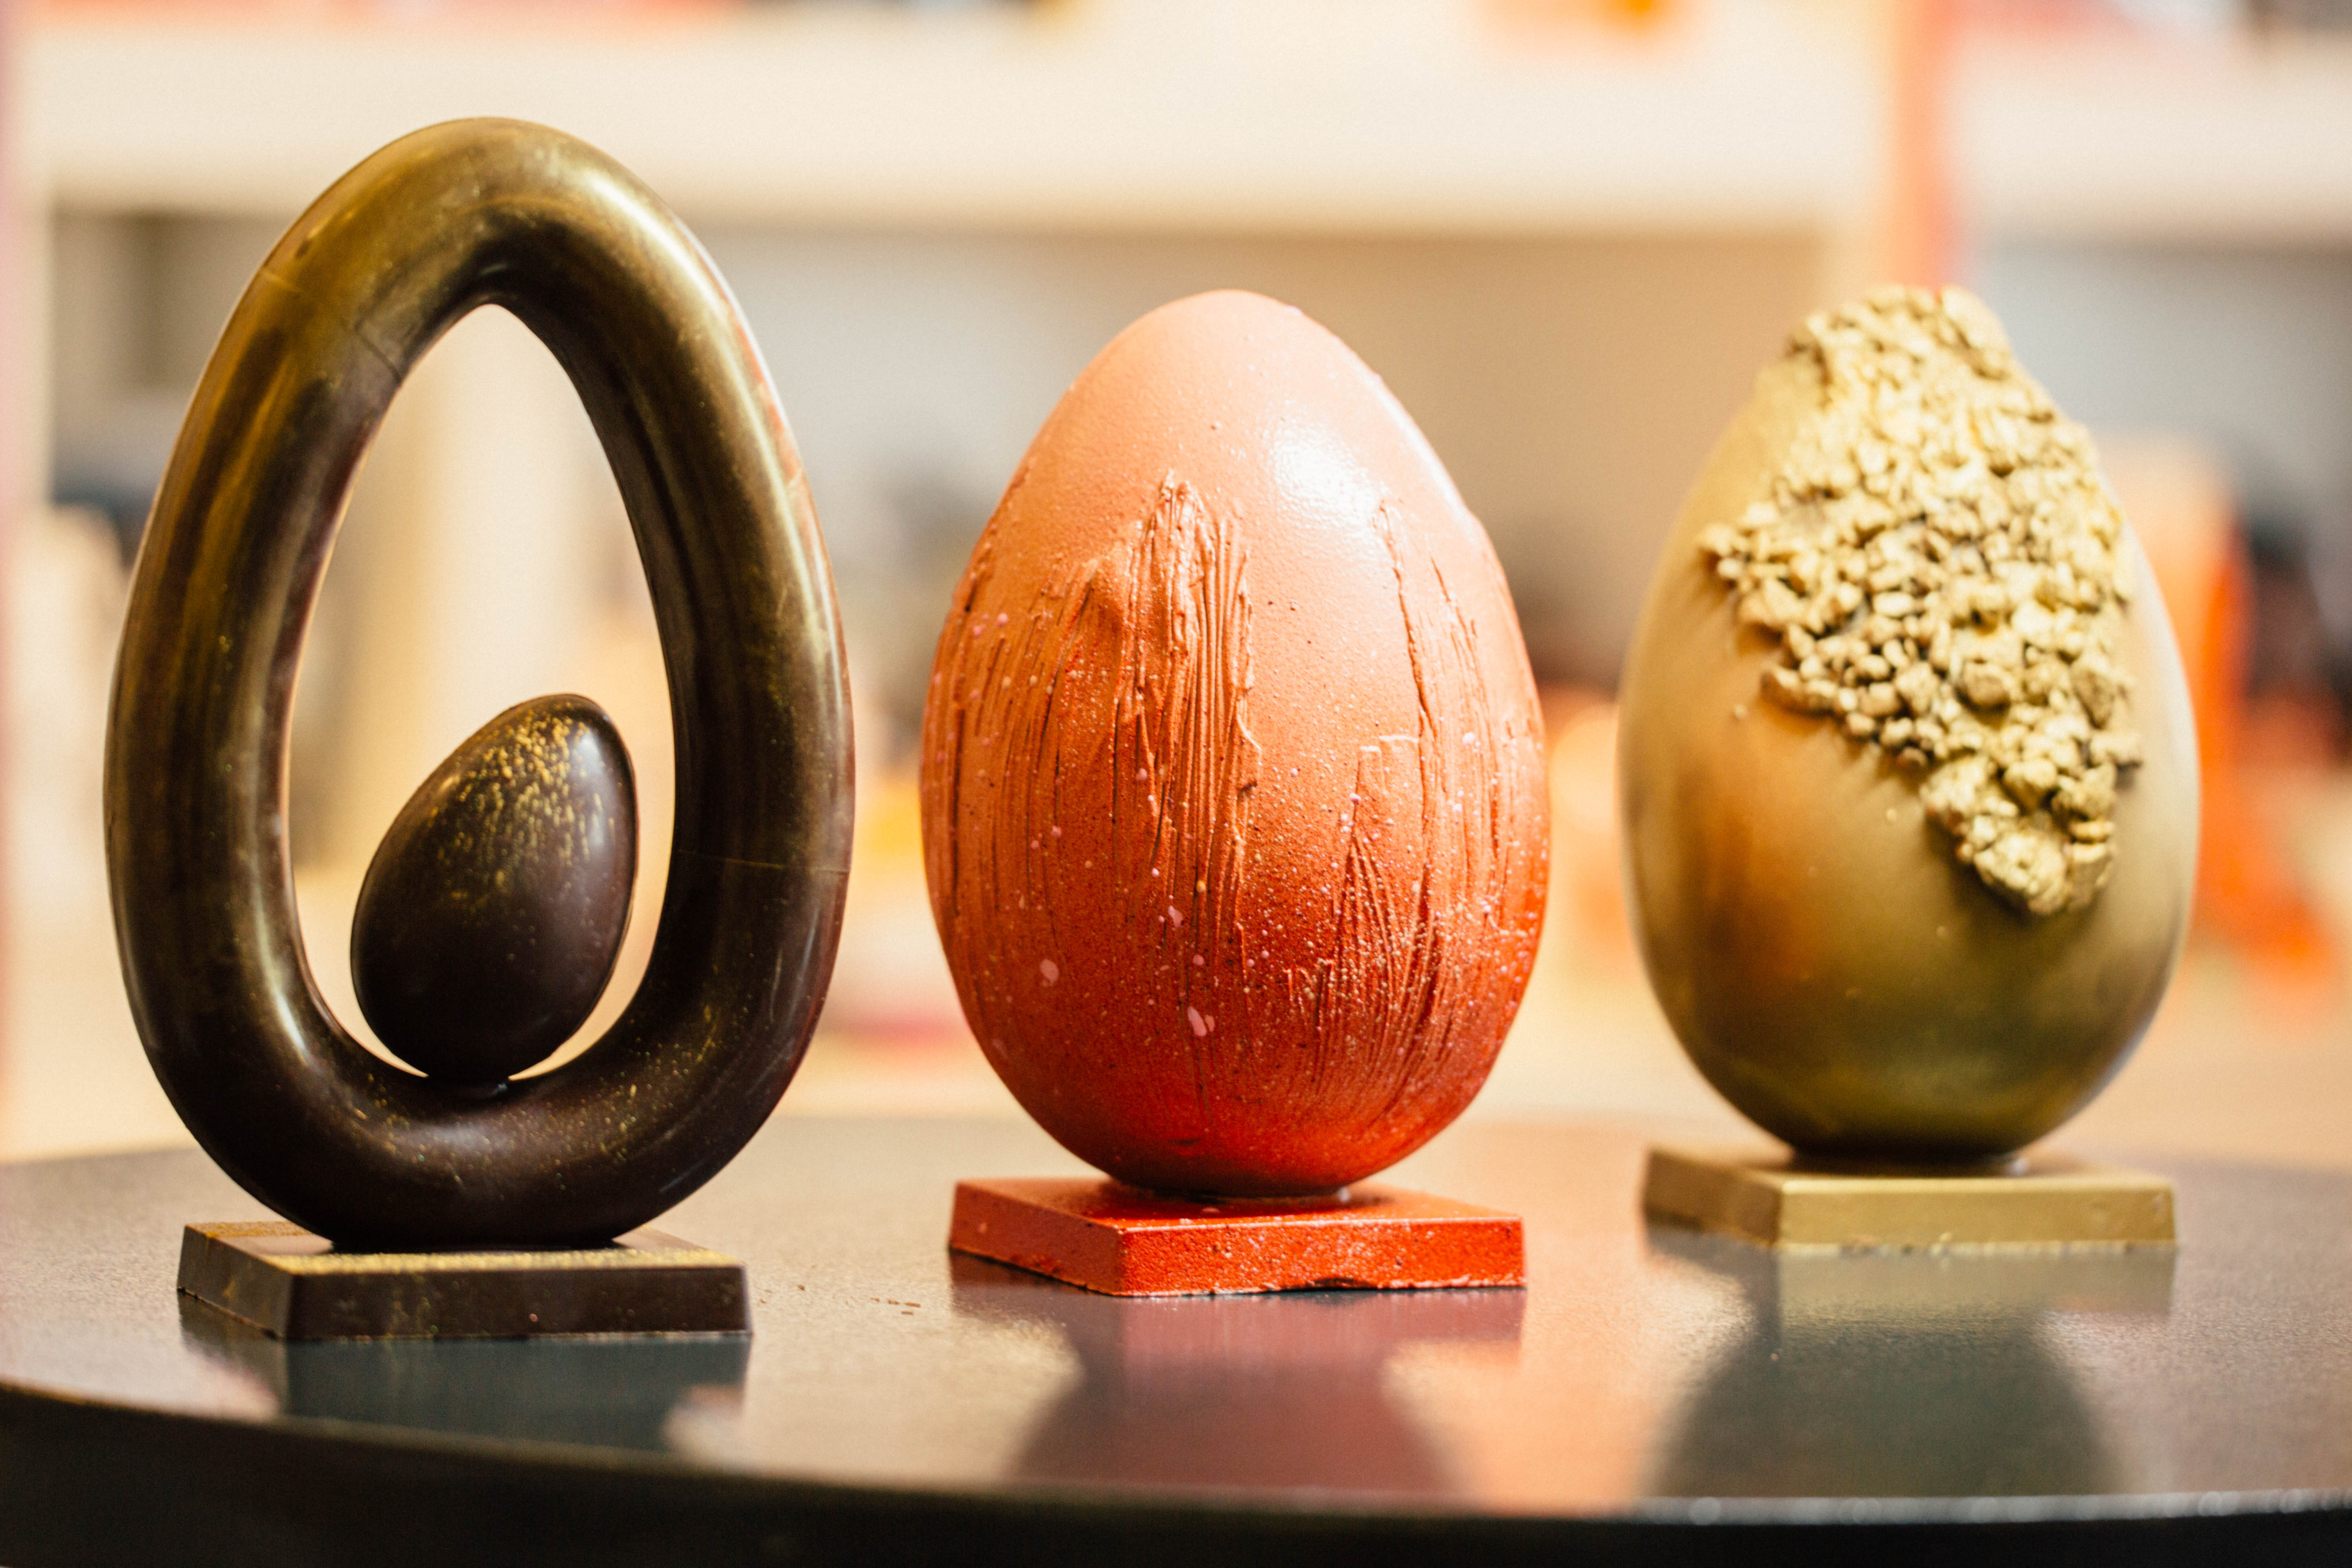 These eggs are made of chocolate and magic.